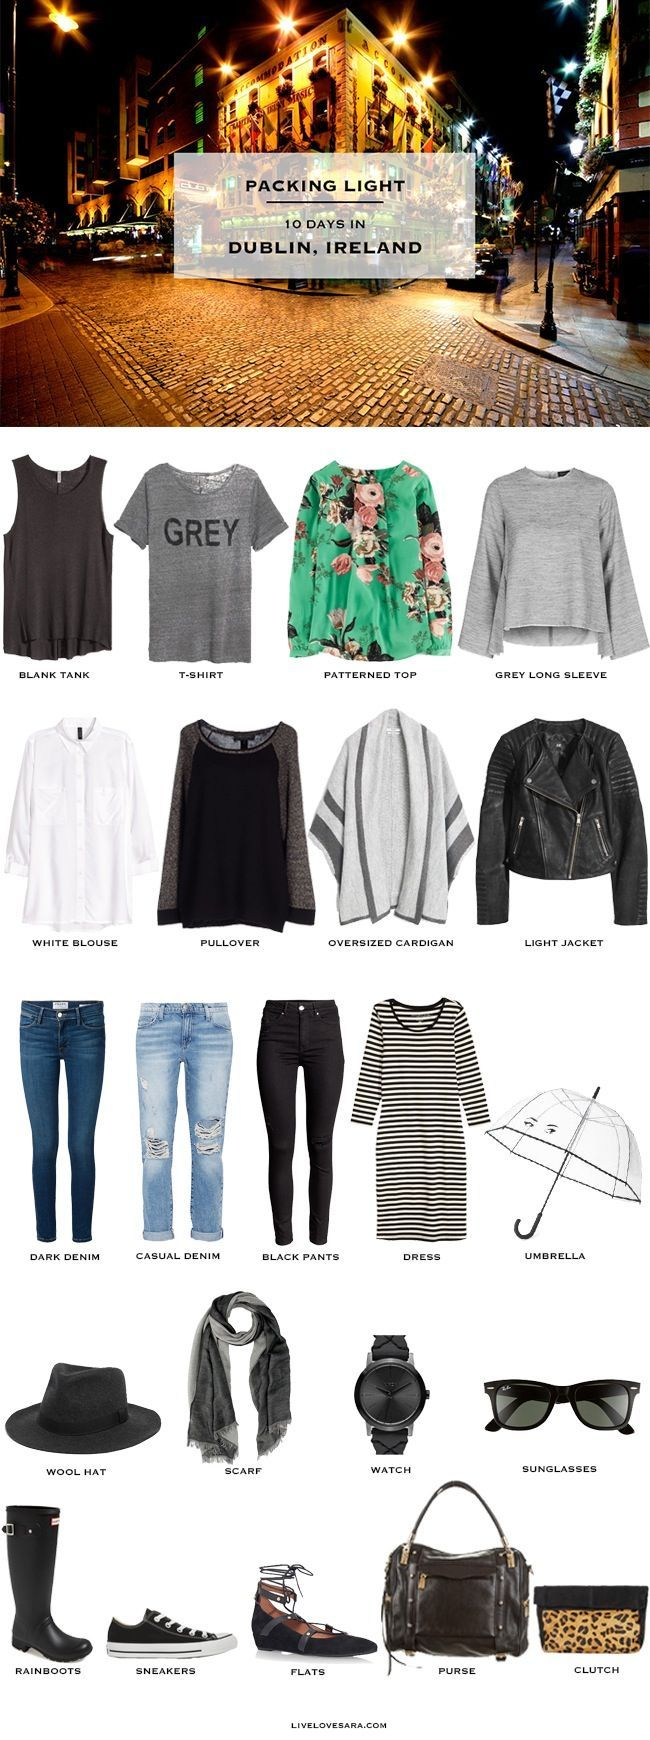 Black Tank – H&M | T-shirt – H&M | Patterened Top – Boden | Grey Top – Topshop White Blouse – H&M | Pullover – Rag & Bone | Oversized Cardigan – Mango Leather Jacket – H&M | Dark Denim – Frame Denim | Casual… Continue Reading →